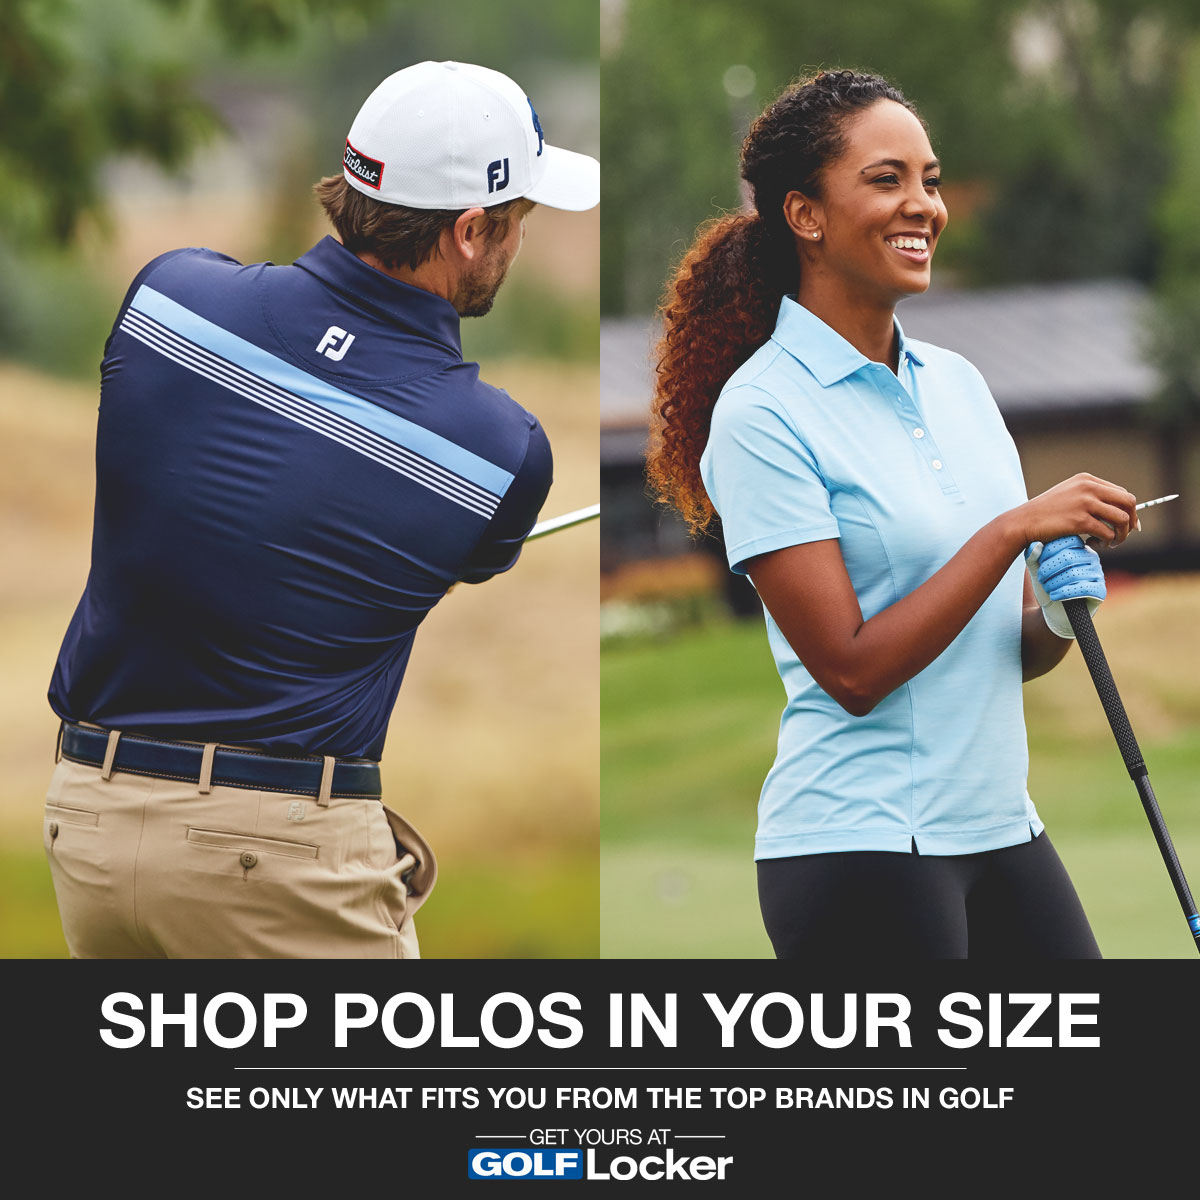 Shop Golf Polos by Size from the Top Brands in Golf